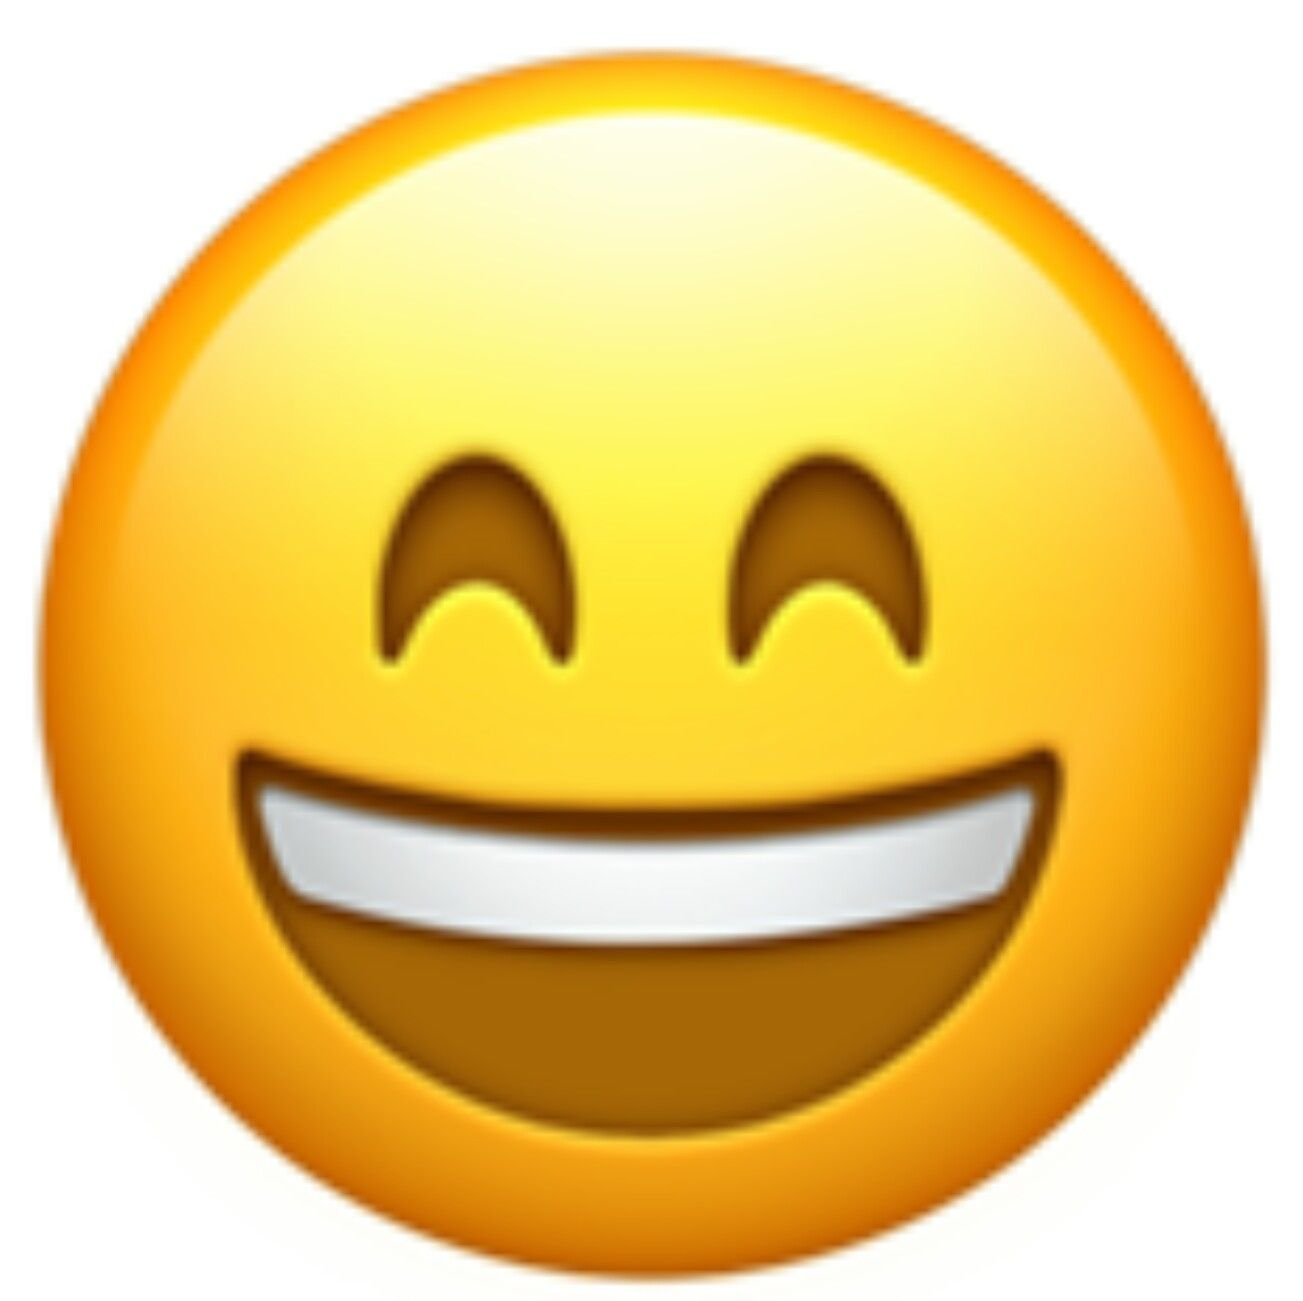 A happy and smiling face with big open mouth, showing teeth.